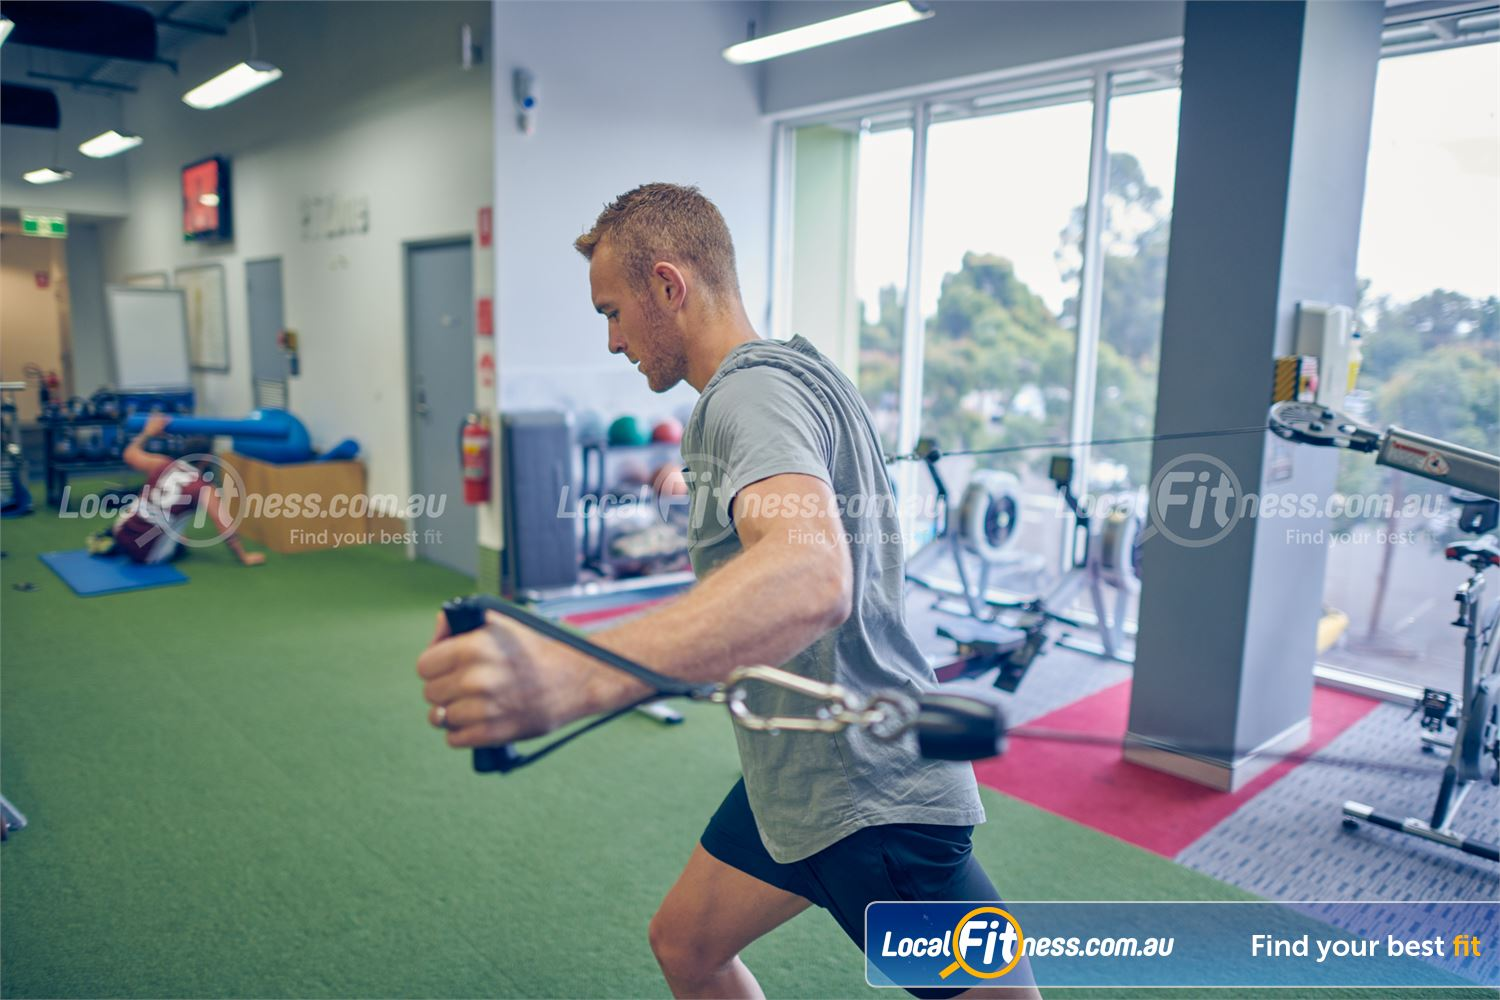 Element Fitness Health Club Near Vermont South Plenty of training space in our functional training zone.